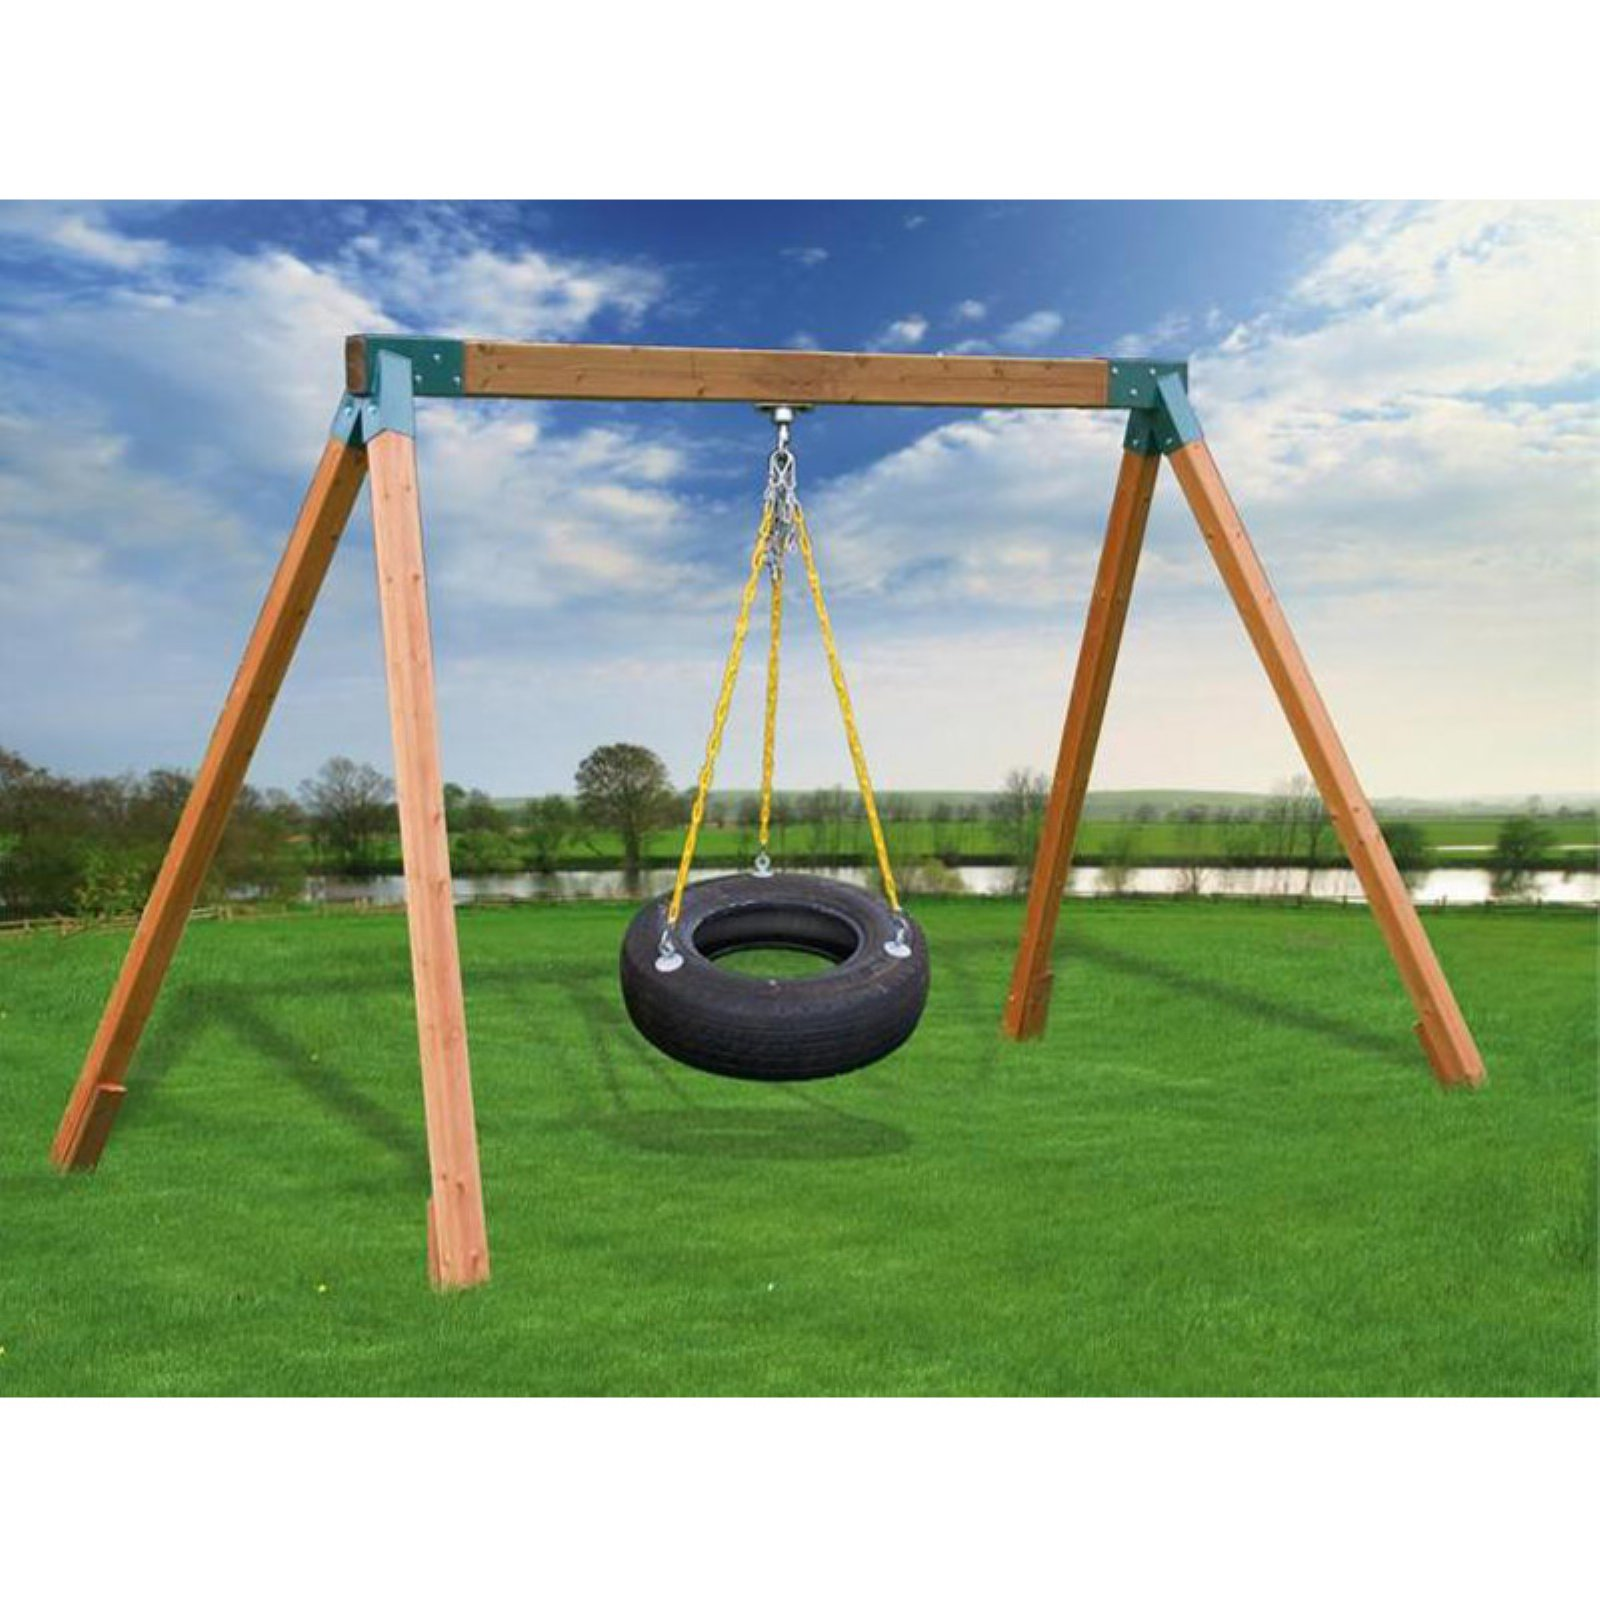 Eastern Jungle Gym Classic A-Frame Cedar Tire Swing Set with Lumber